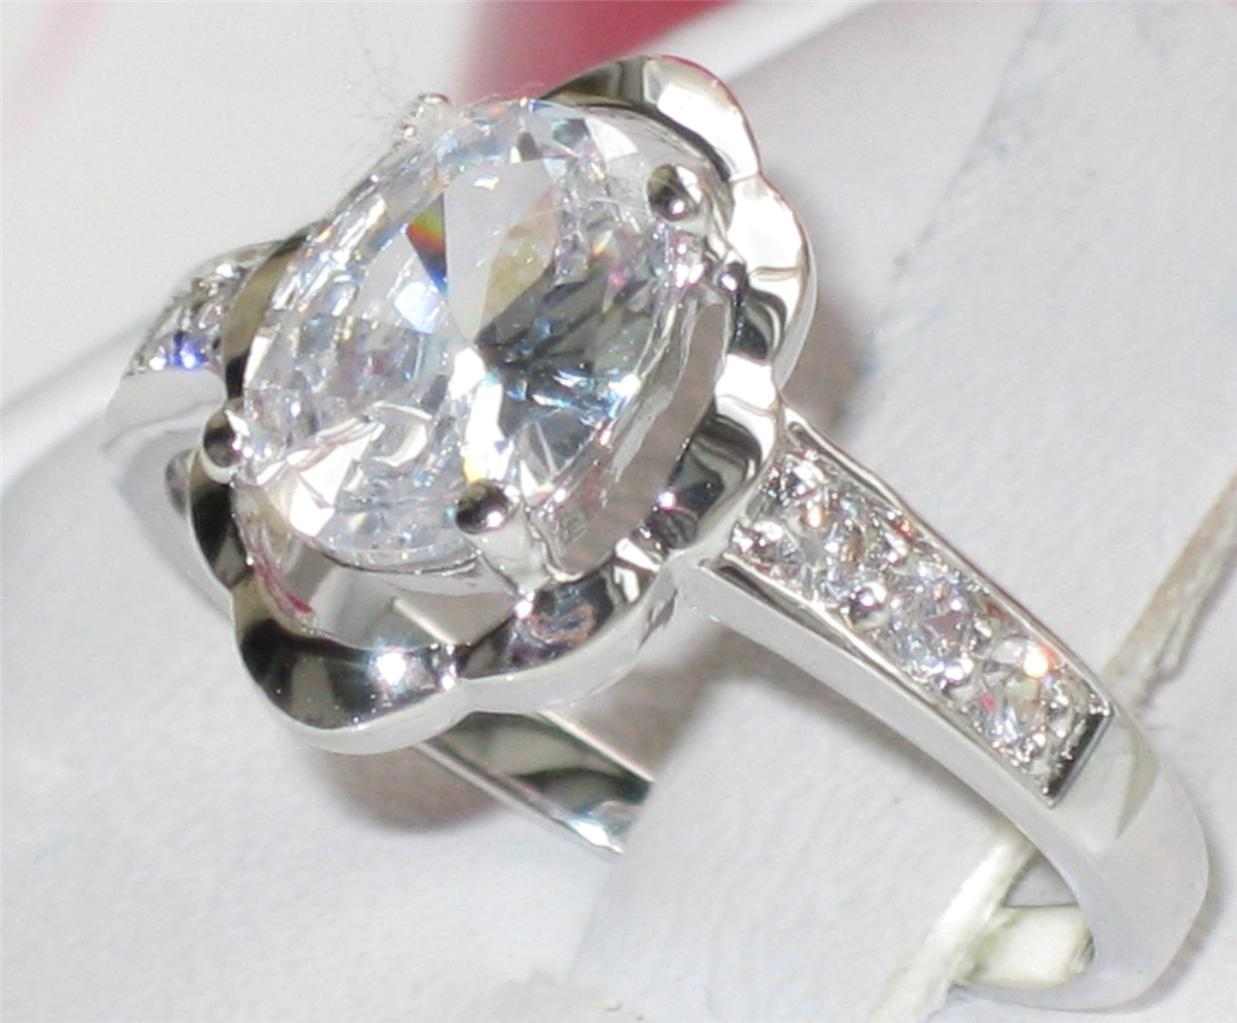 SALE WOMENS OVAL CUT SOLITAIRE PRETTY 1 65CT SIMULATED DIAMOND RING R287